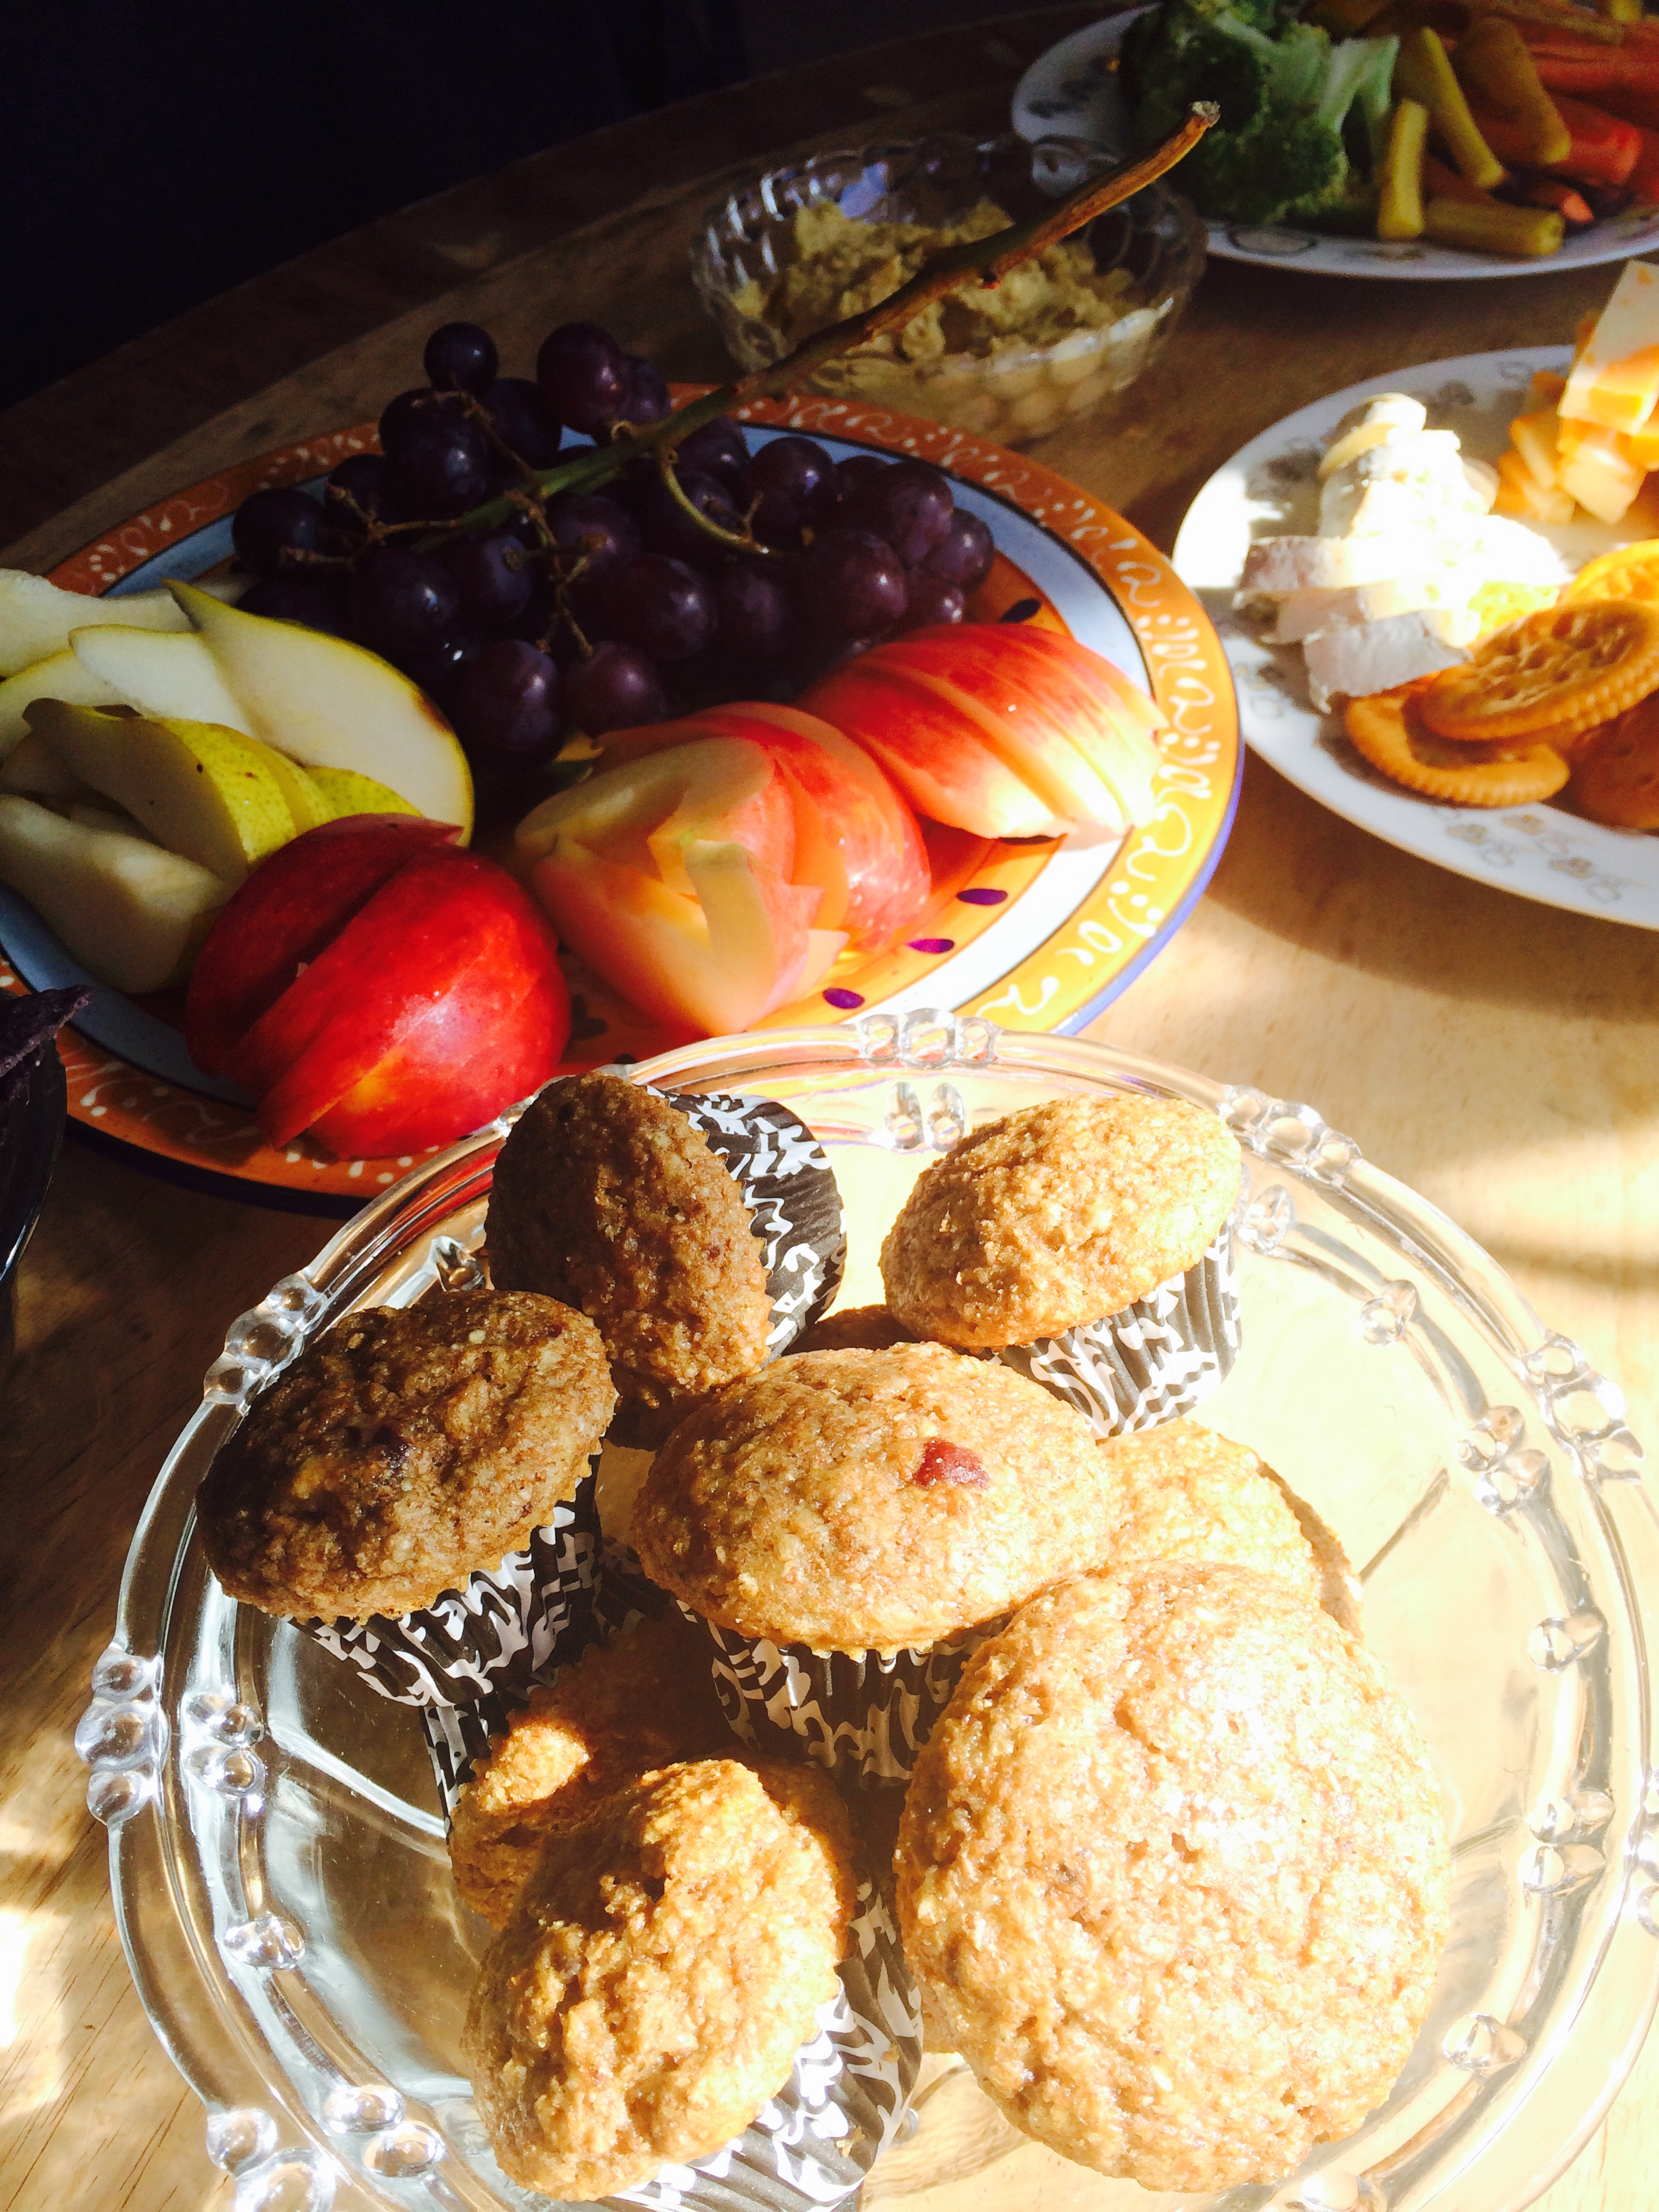 A moment to honour Heather's homemade muffins! Each week she makes delicious muffins to keep our artists going!